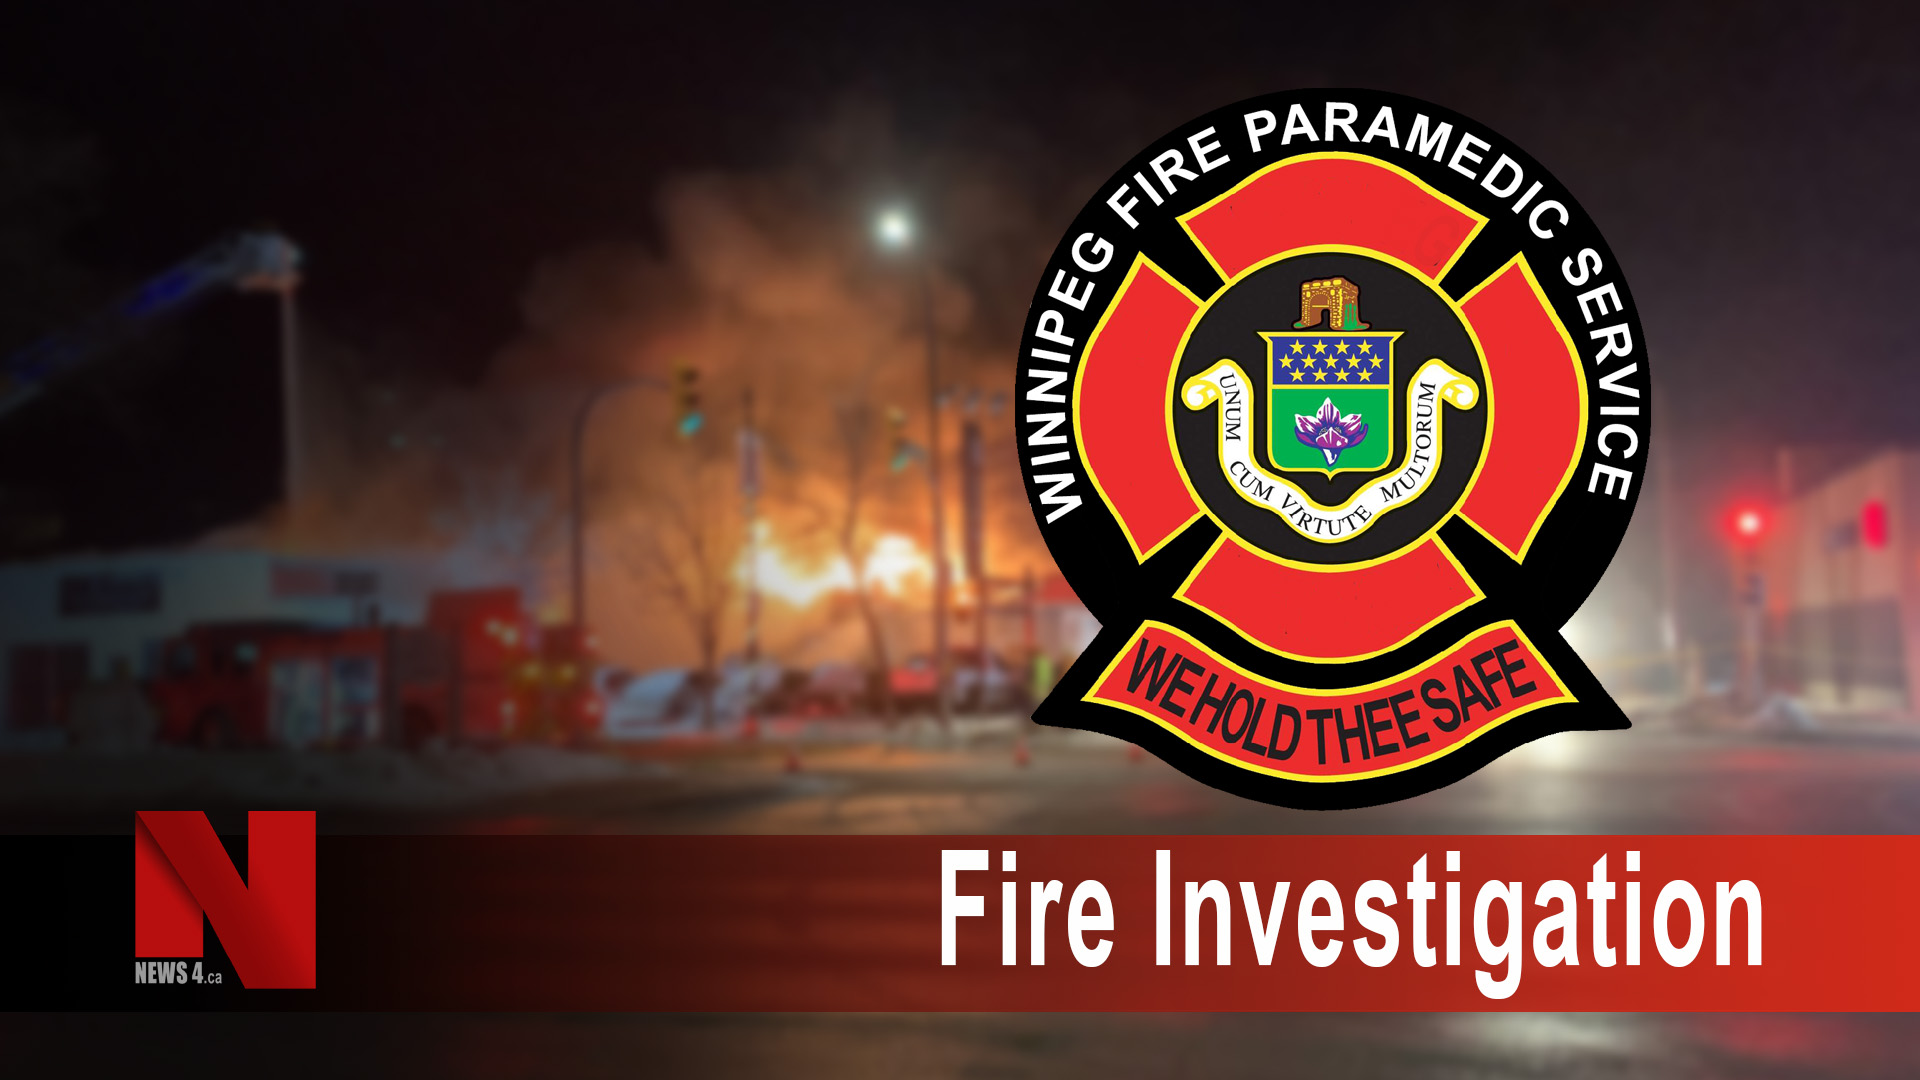 Two injured in McDermot Avenue fire on Sunday night